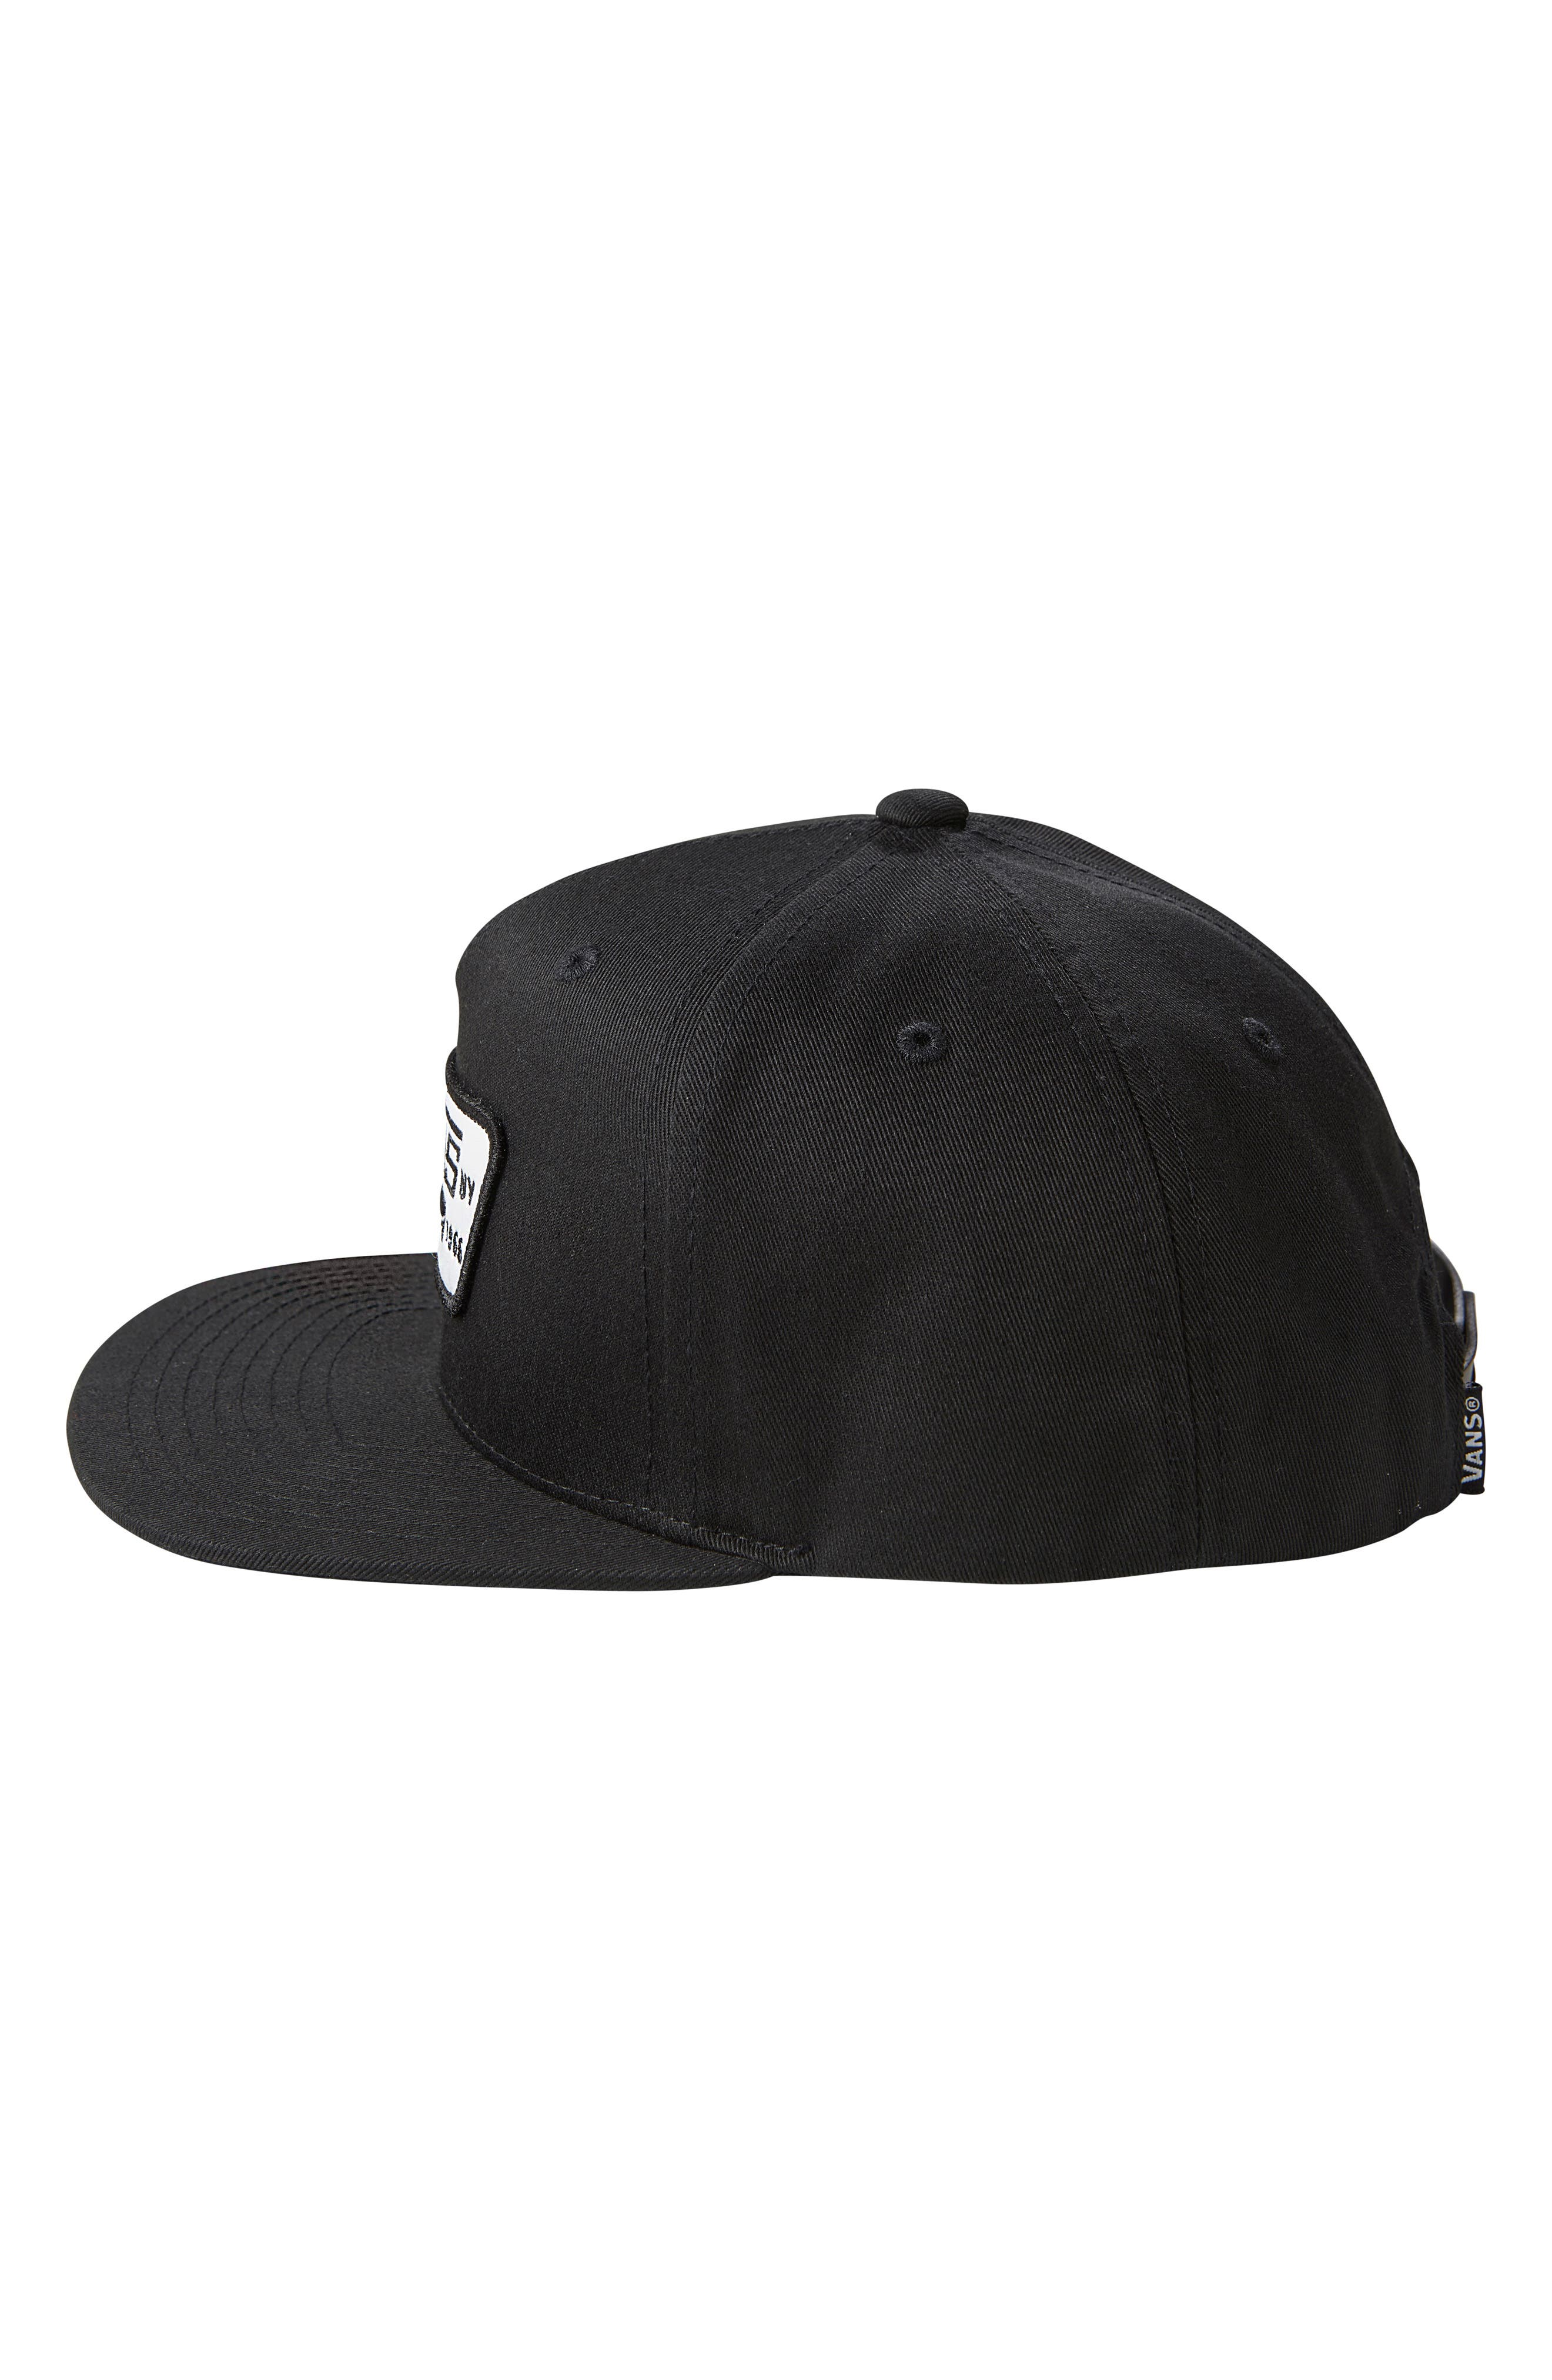 'Full Patch' Snapback Hat,                             Main thumbnail 1, color,                             001